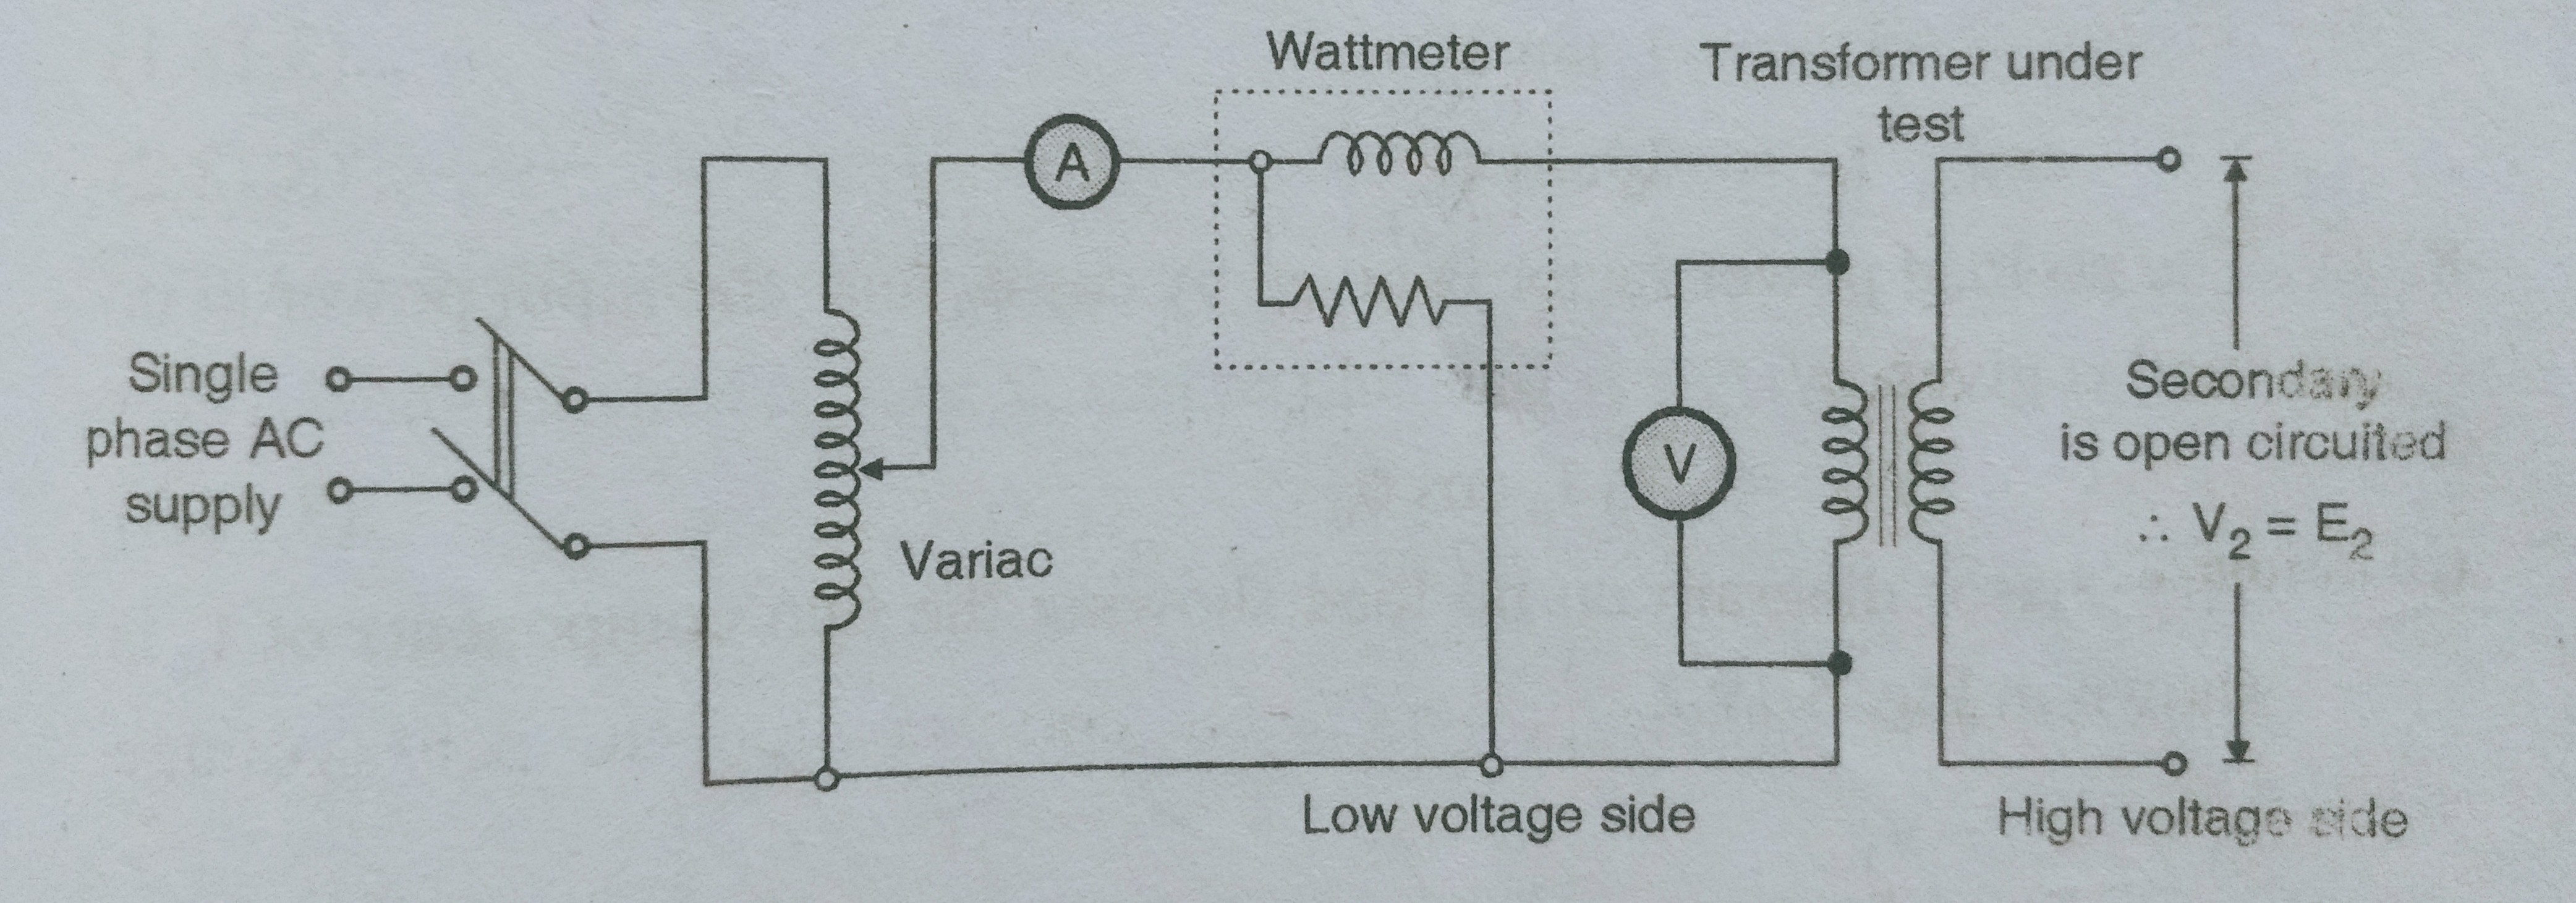 Why Do We Conduct An Oc Test On The Lv Side Of A Transformer Quora Circuit Diagram All Meters Are Also Connected To Because Availabilty High Range Voltmeters Is Not Easyhv Costly